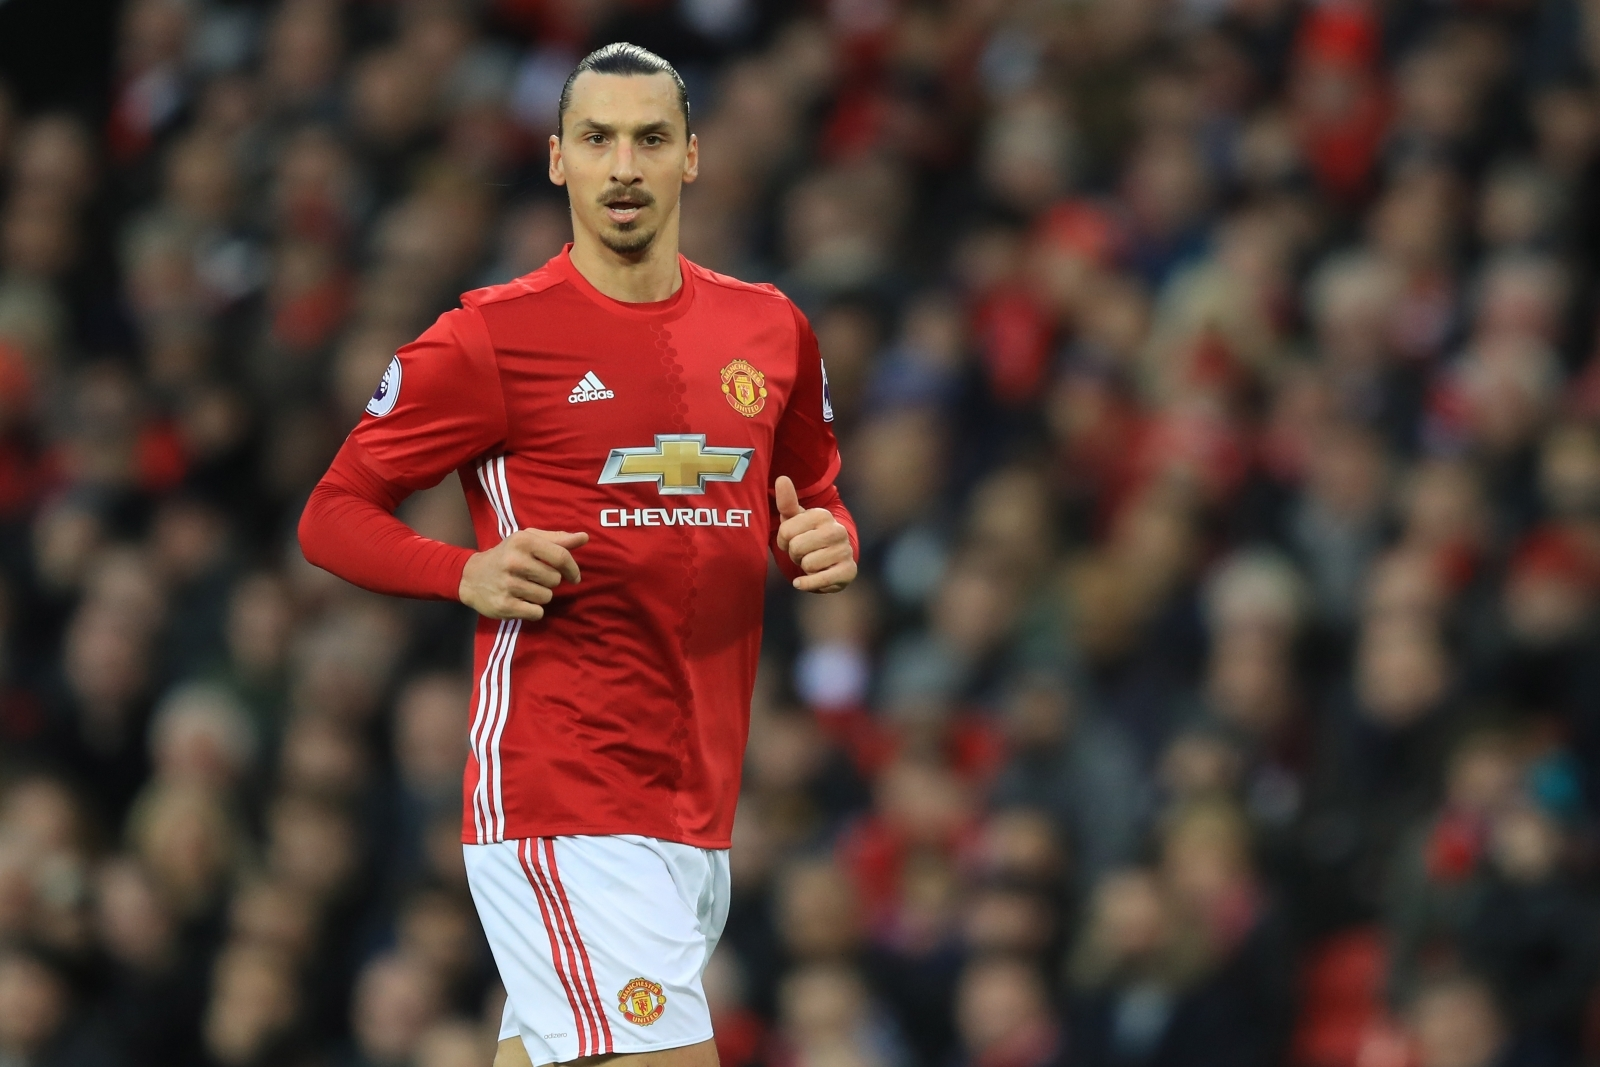 Man Utd Confirm Zlatan Ibrahimovic Has Re-Signed With The Club